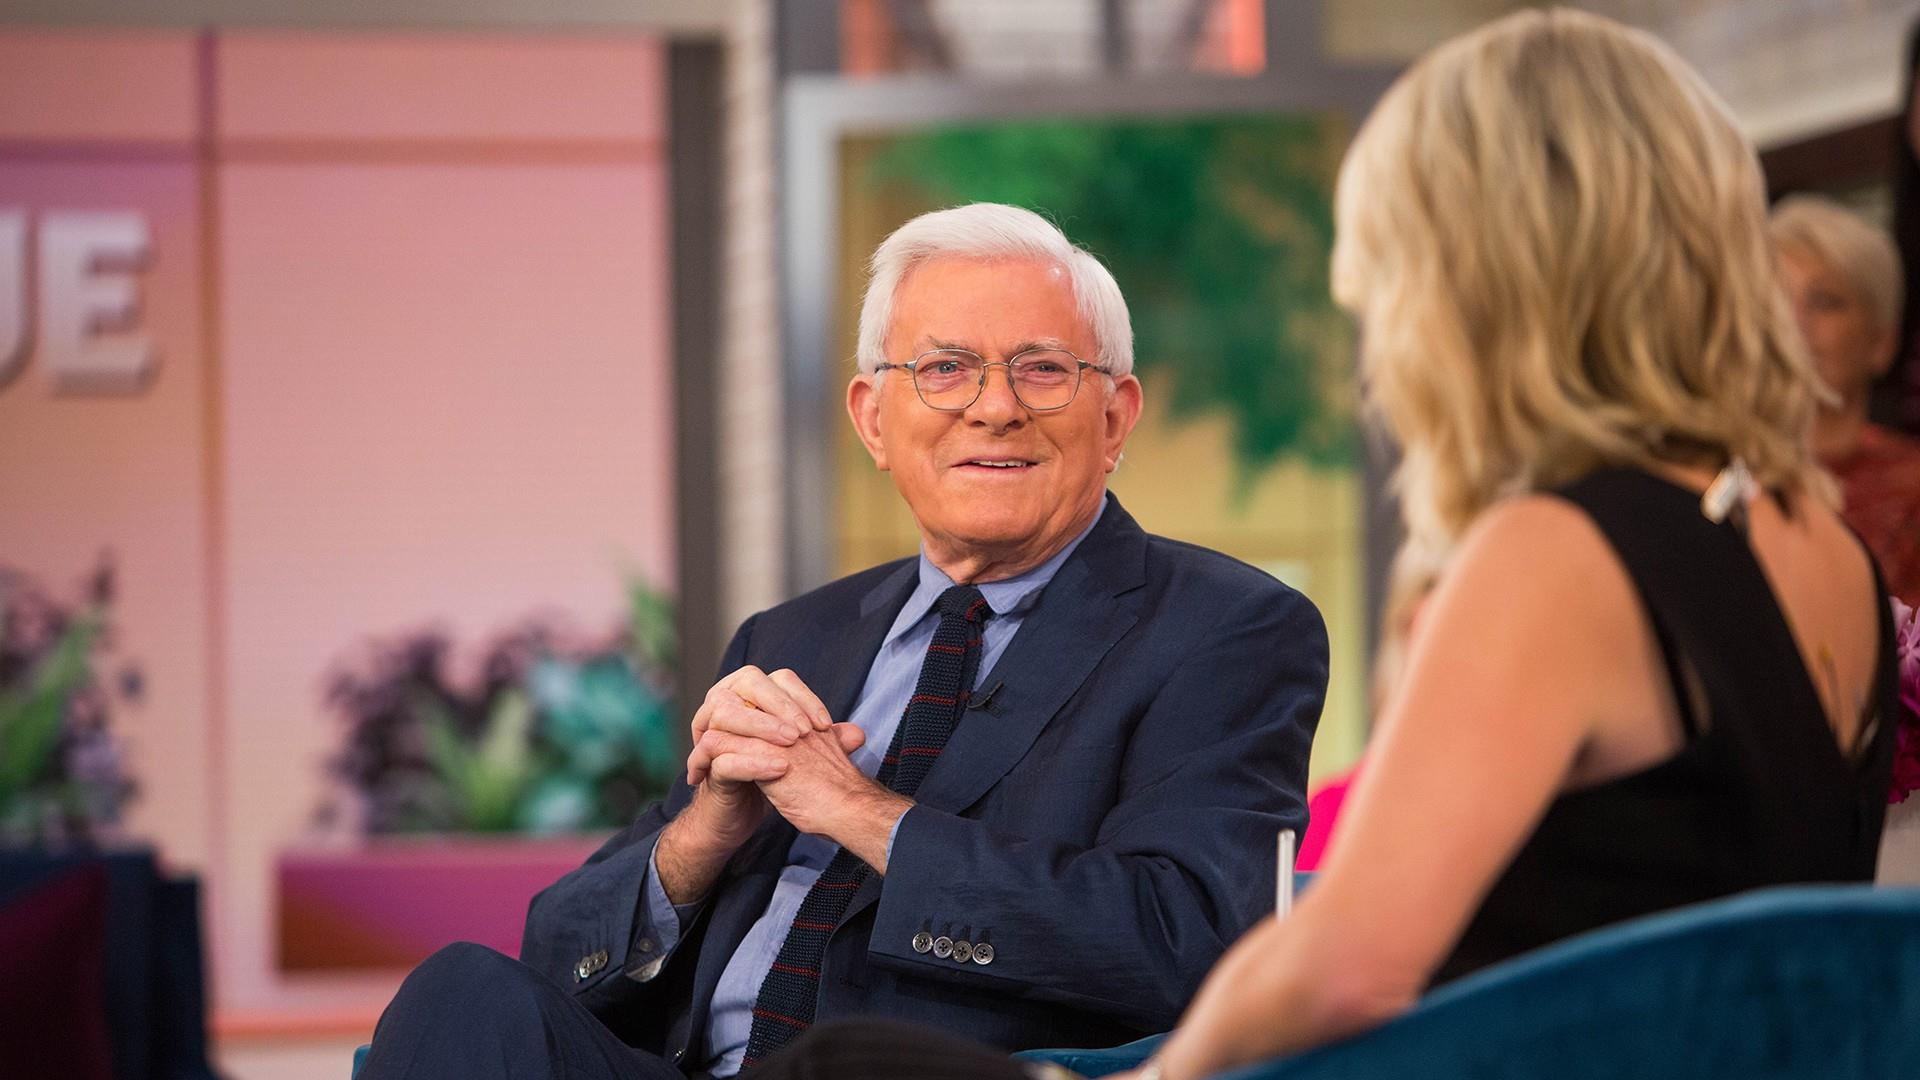 Phil Donahue on his legendary career and becoming a single dad